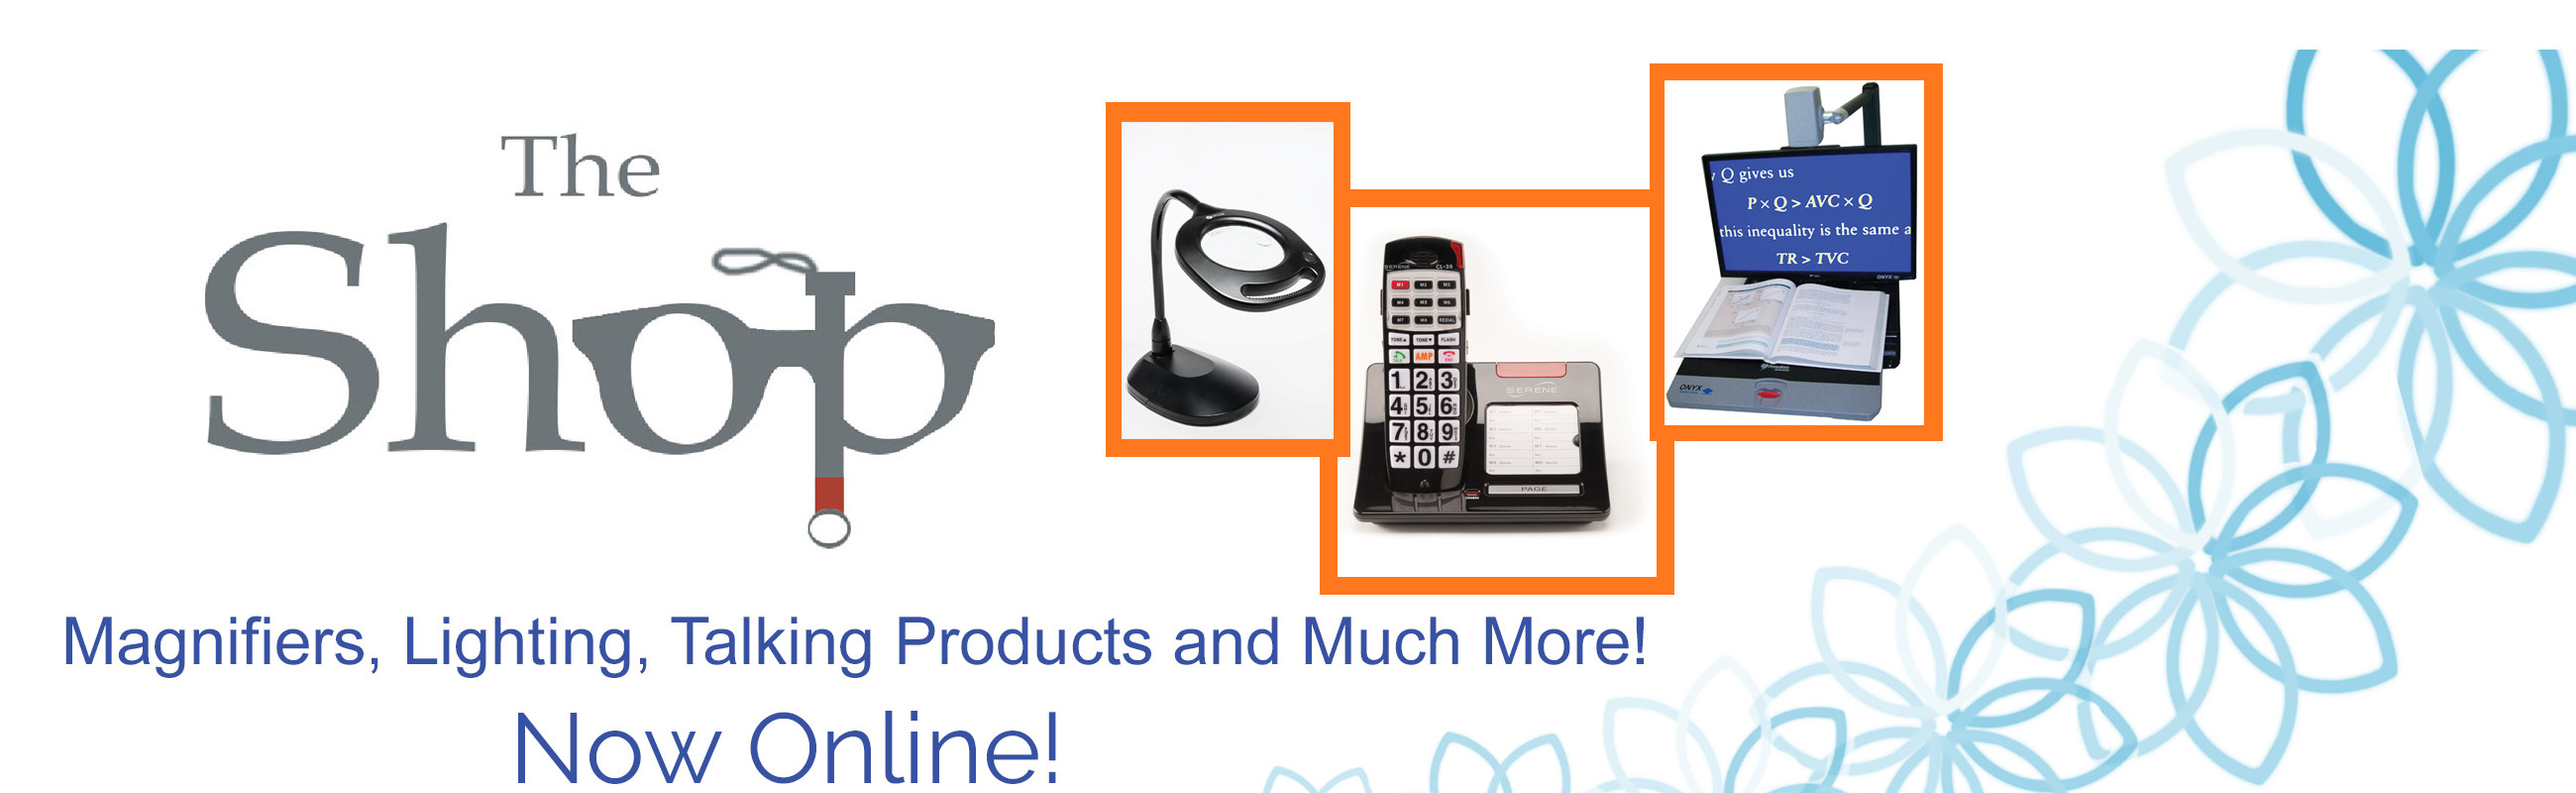 Purchase low-vision products from The Shop at The Sight Center